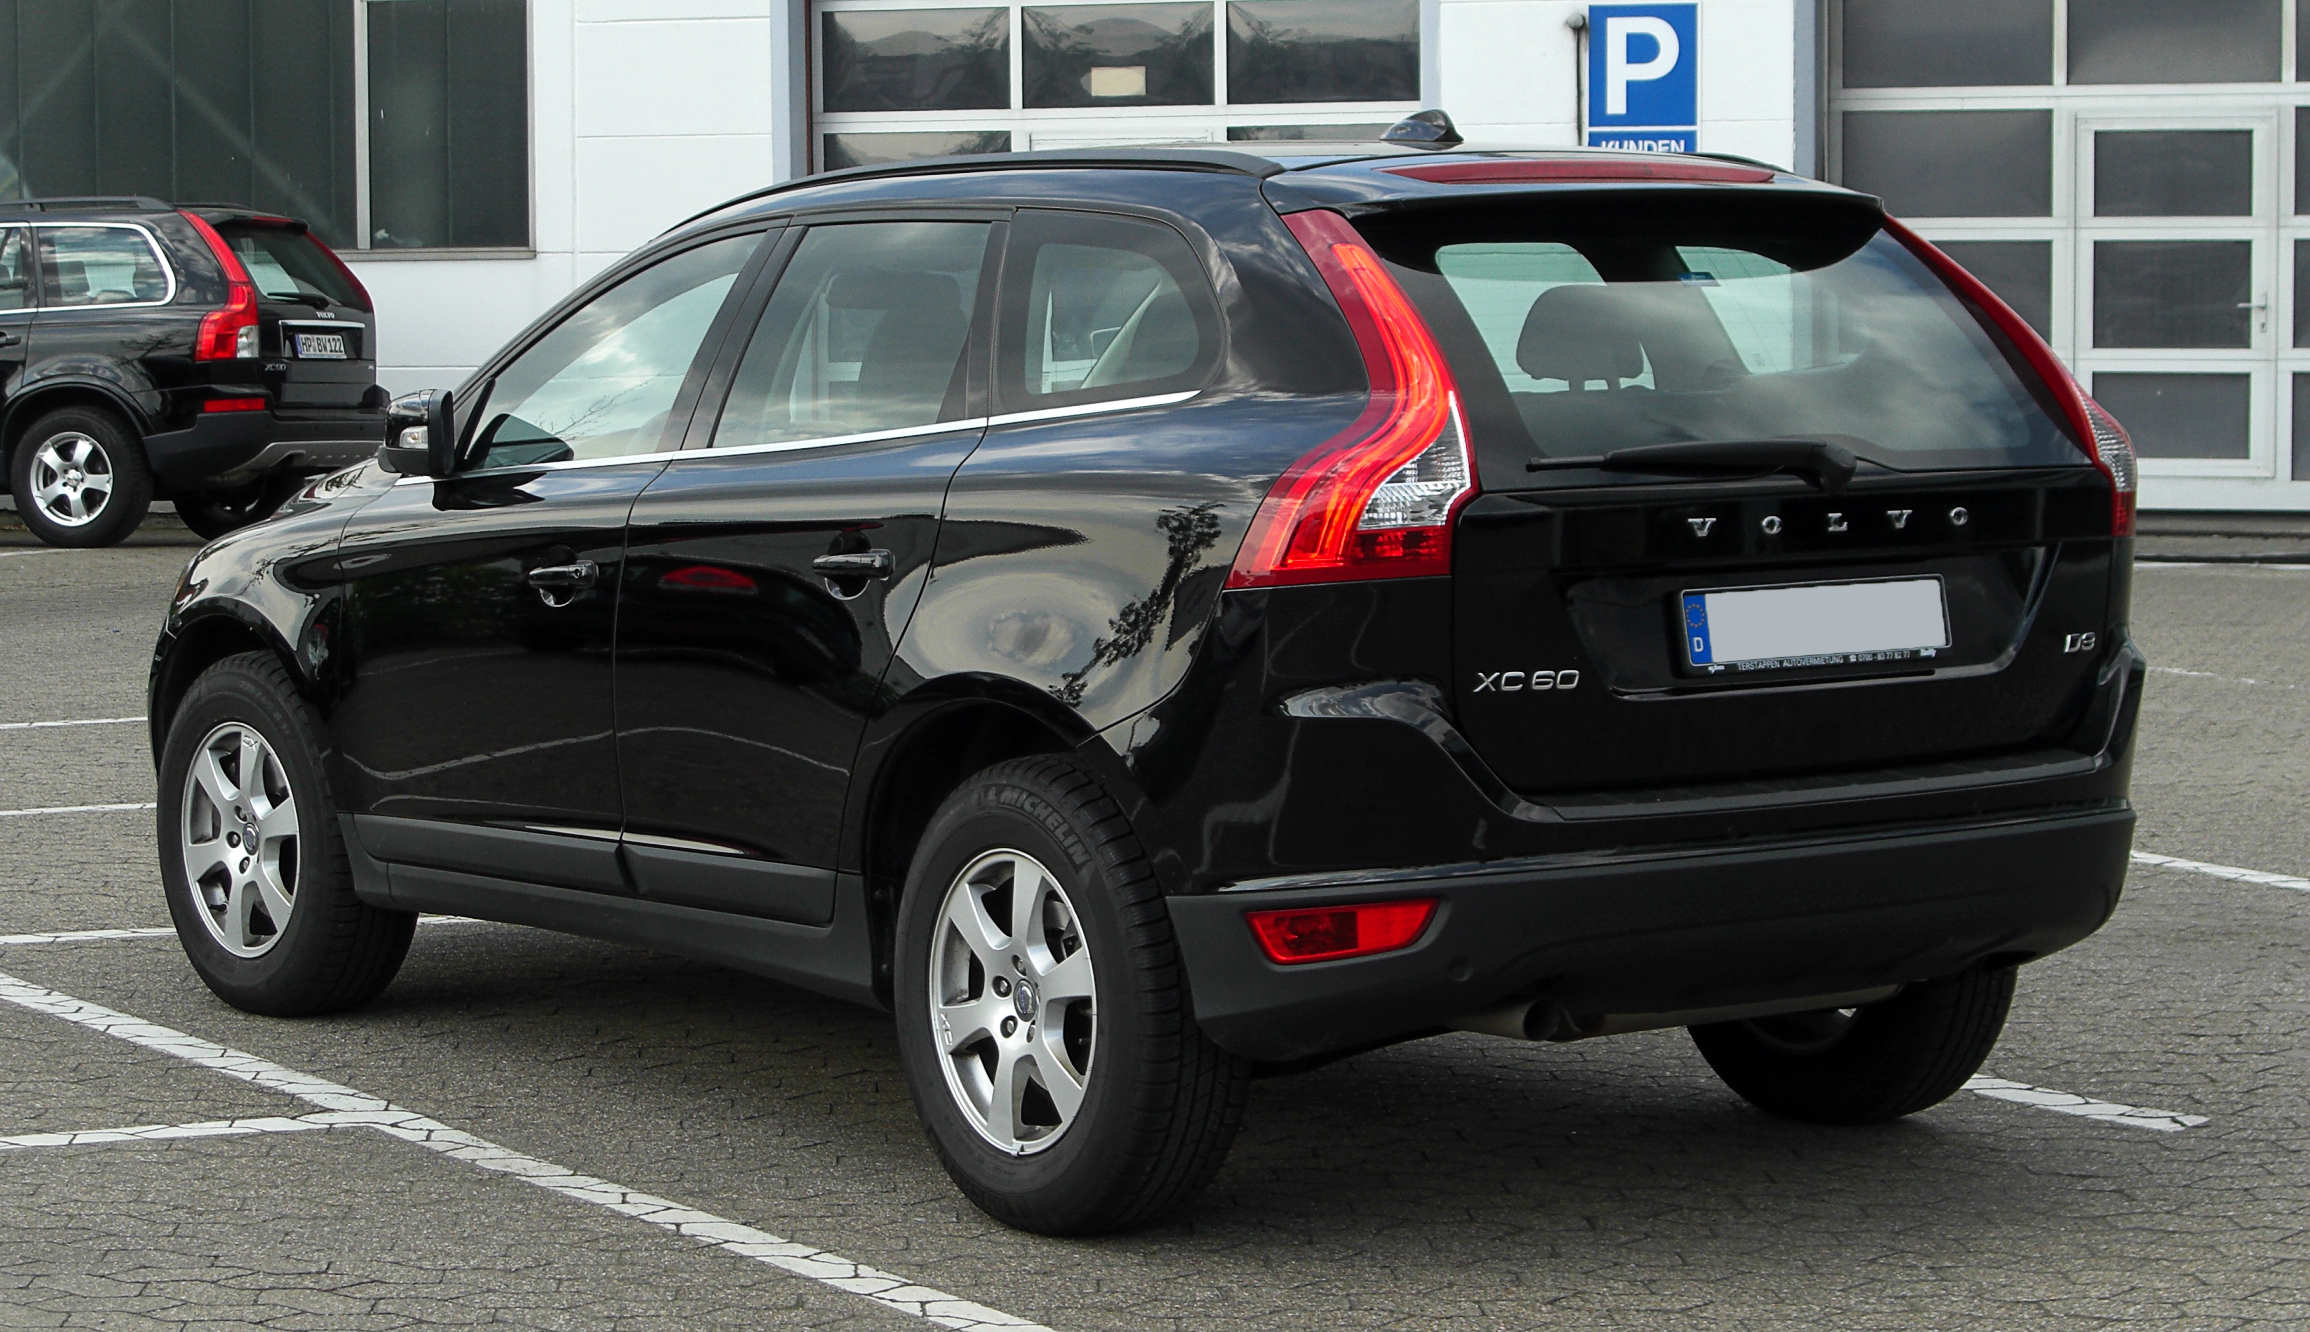 file volvo xc60 d3 heckansicht 16 april 2011 wikimedia commons. Black Bedroom Furniture Sets. Home Design Ideas